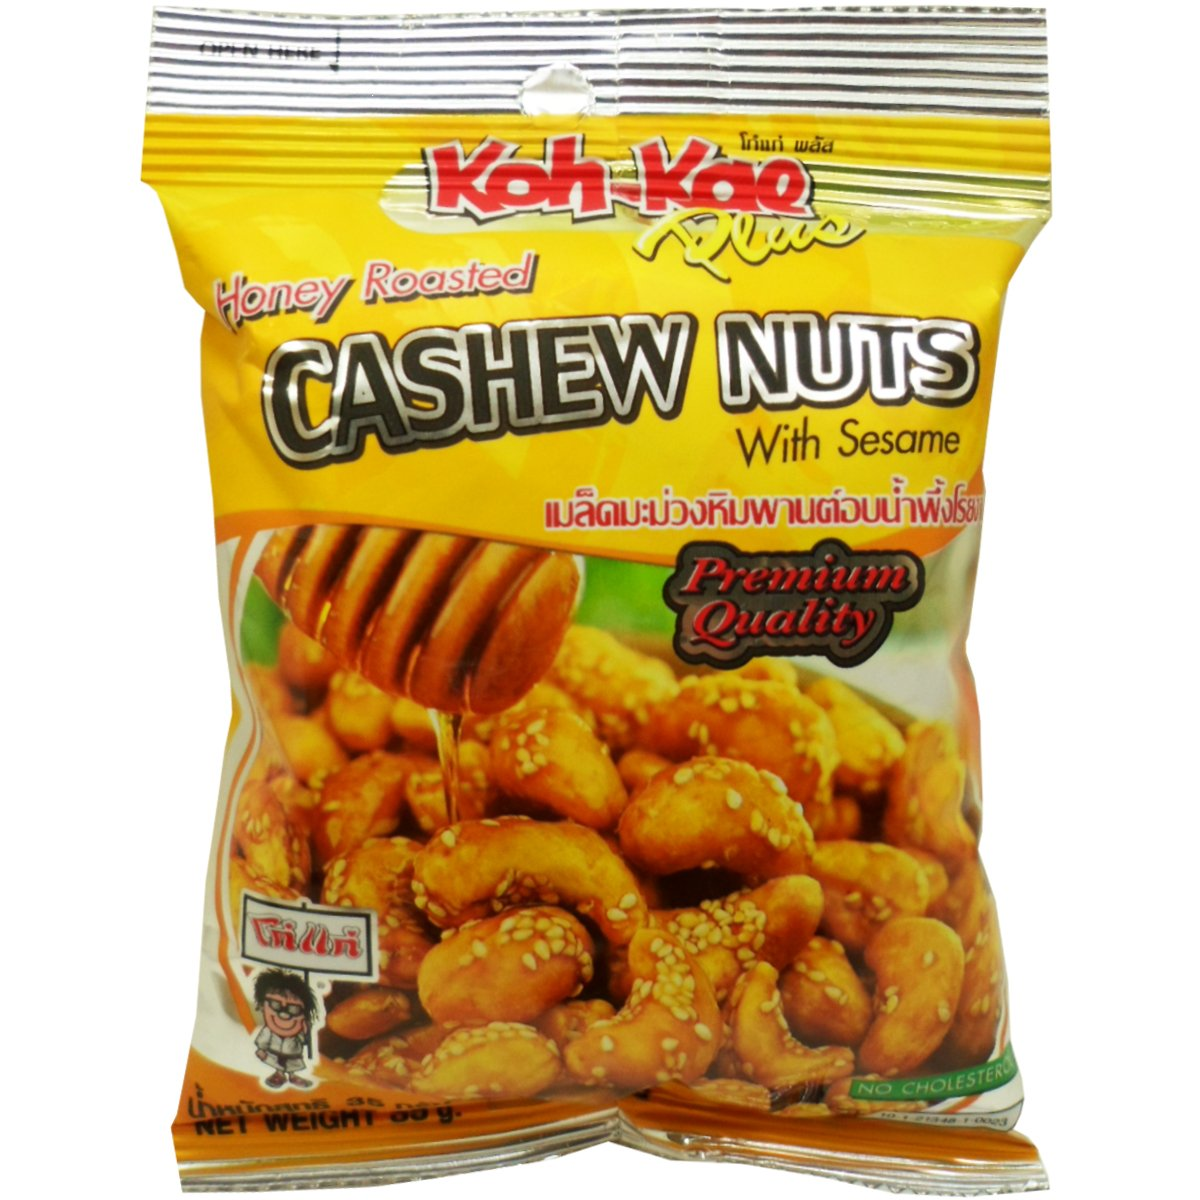 Koh-kae Honey Roasted Cashew Nuts with Sesame Snack (Anacardium Occidentale) Net Wt 35 G (1.23 Oz) X 3 Bags